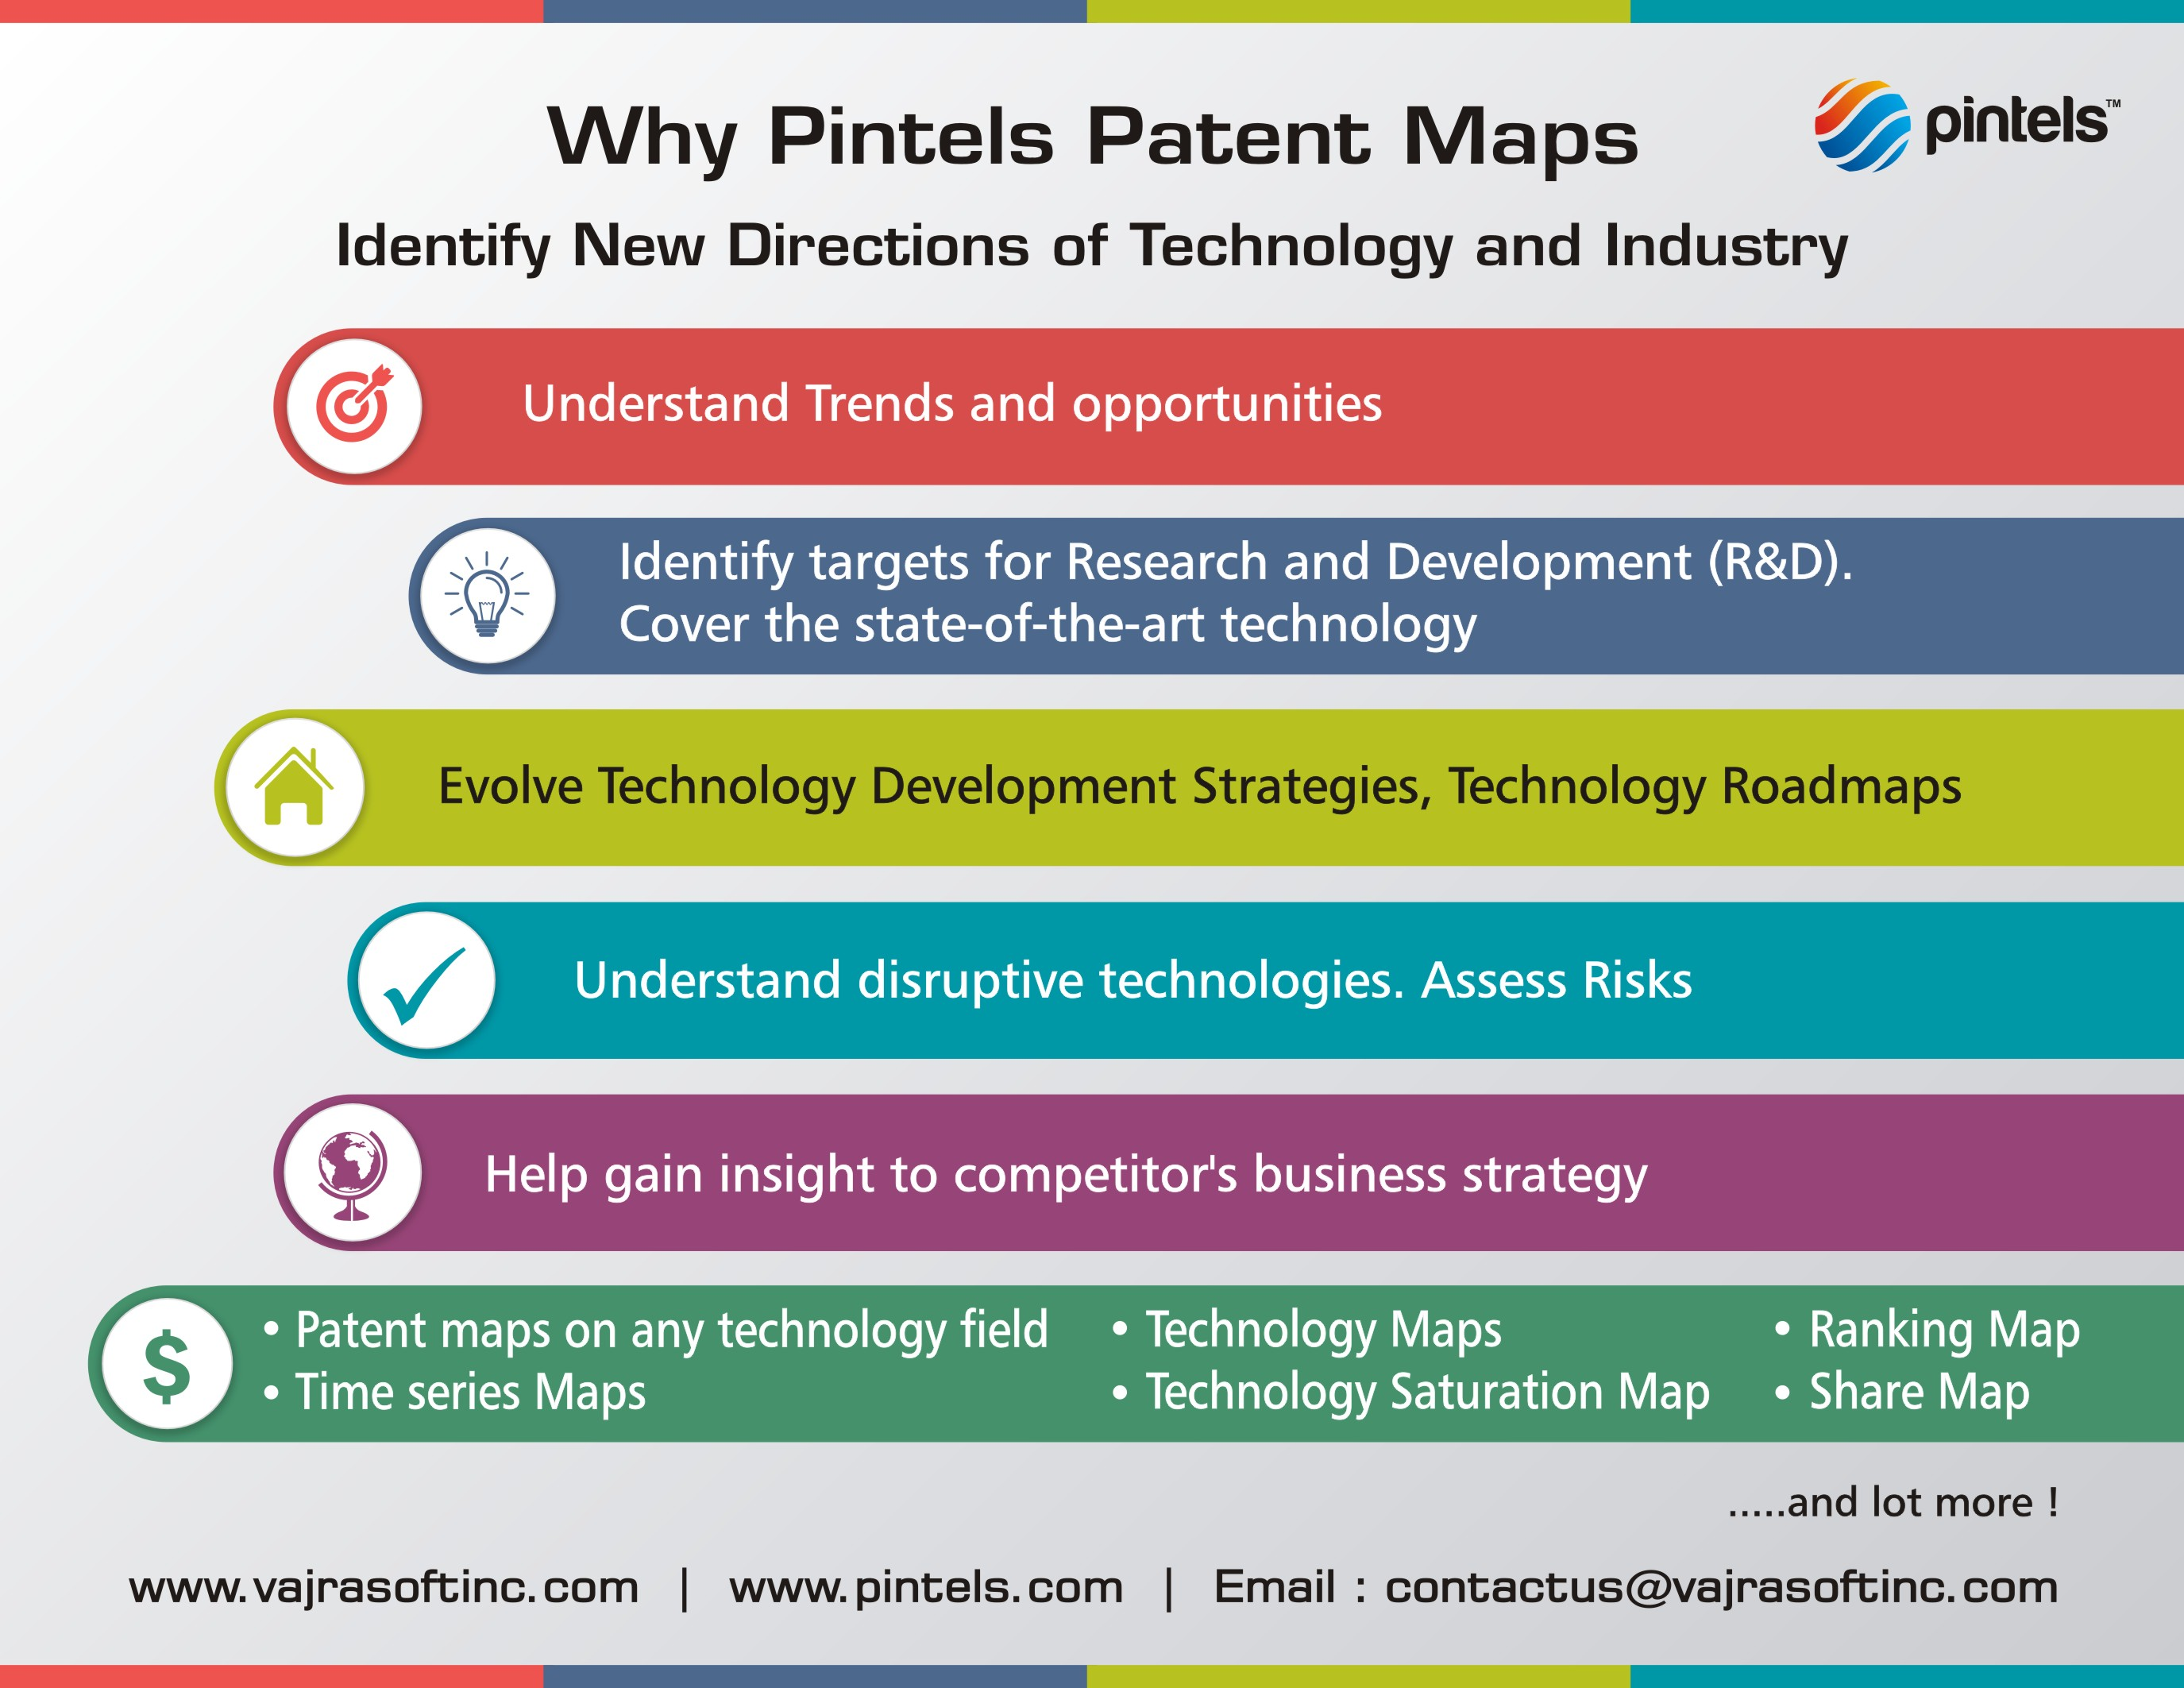 Pintels Patent Maps infographic